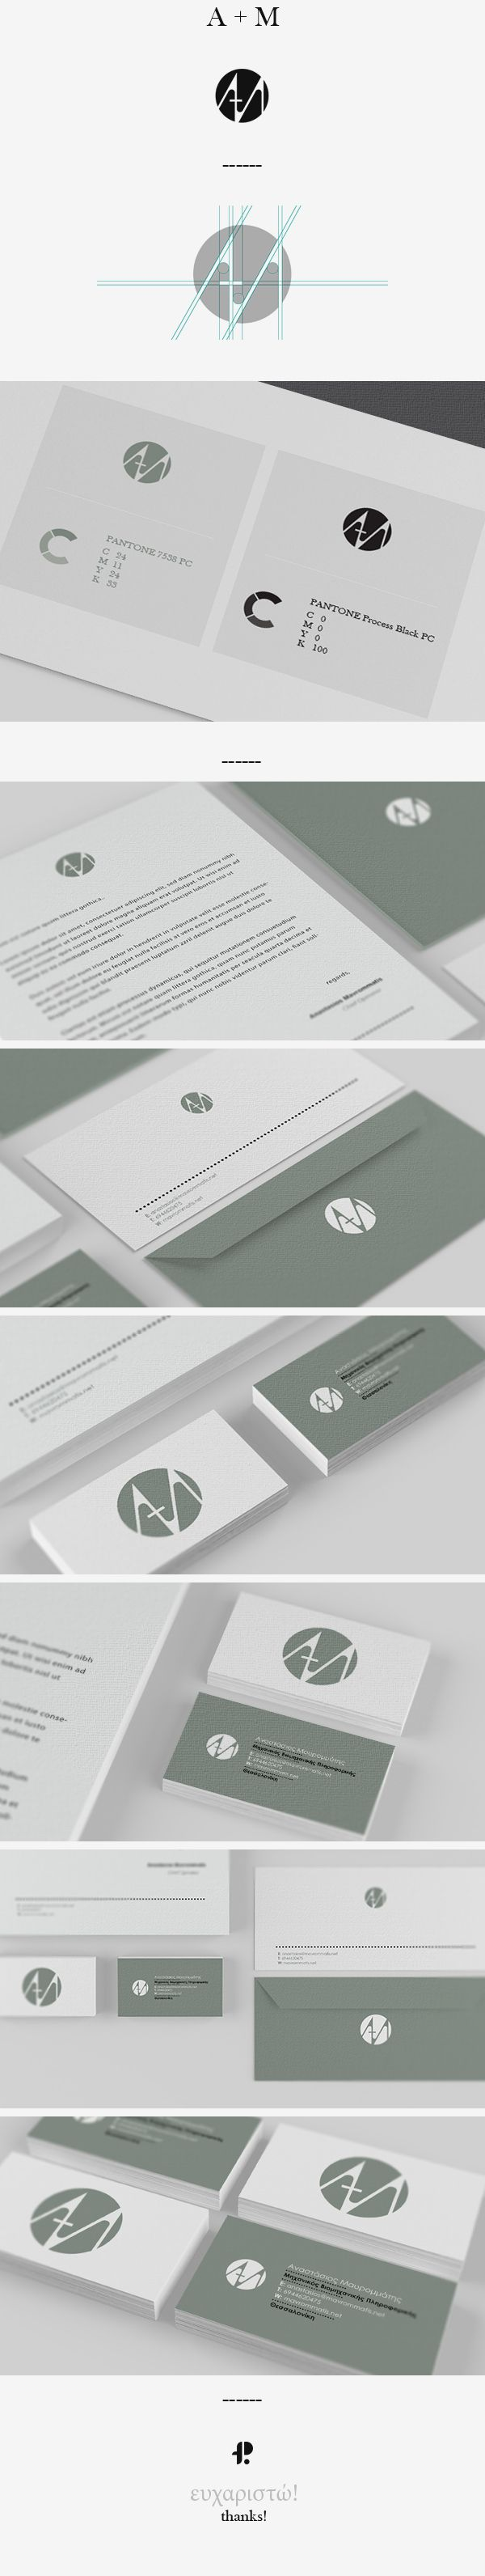 Letterhead logos don't have to be positioned in the top left corner, nor must they be surrounded by contact information. This letterhead design showcases the brand with a central, color logo on top and reserves the contact information for a simple line below the body copy.